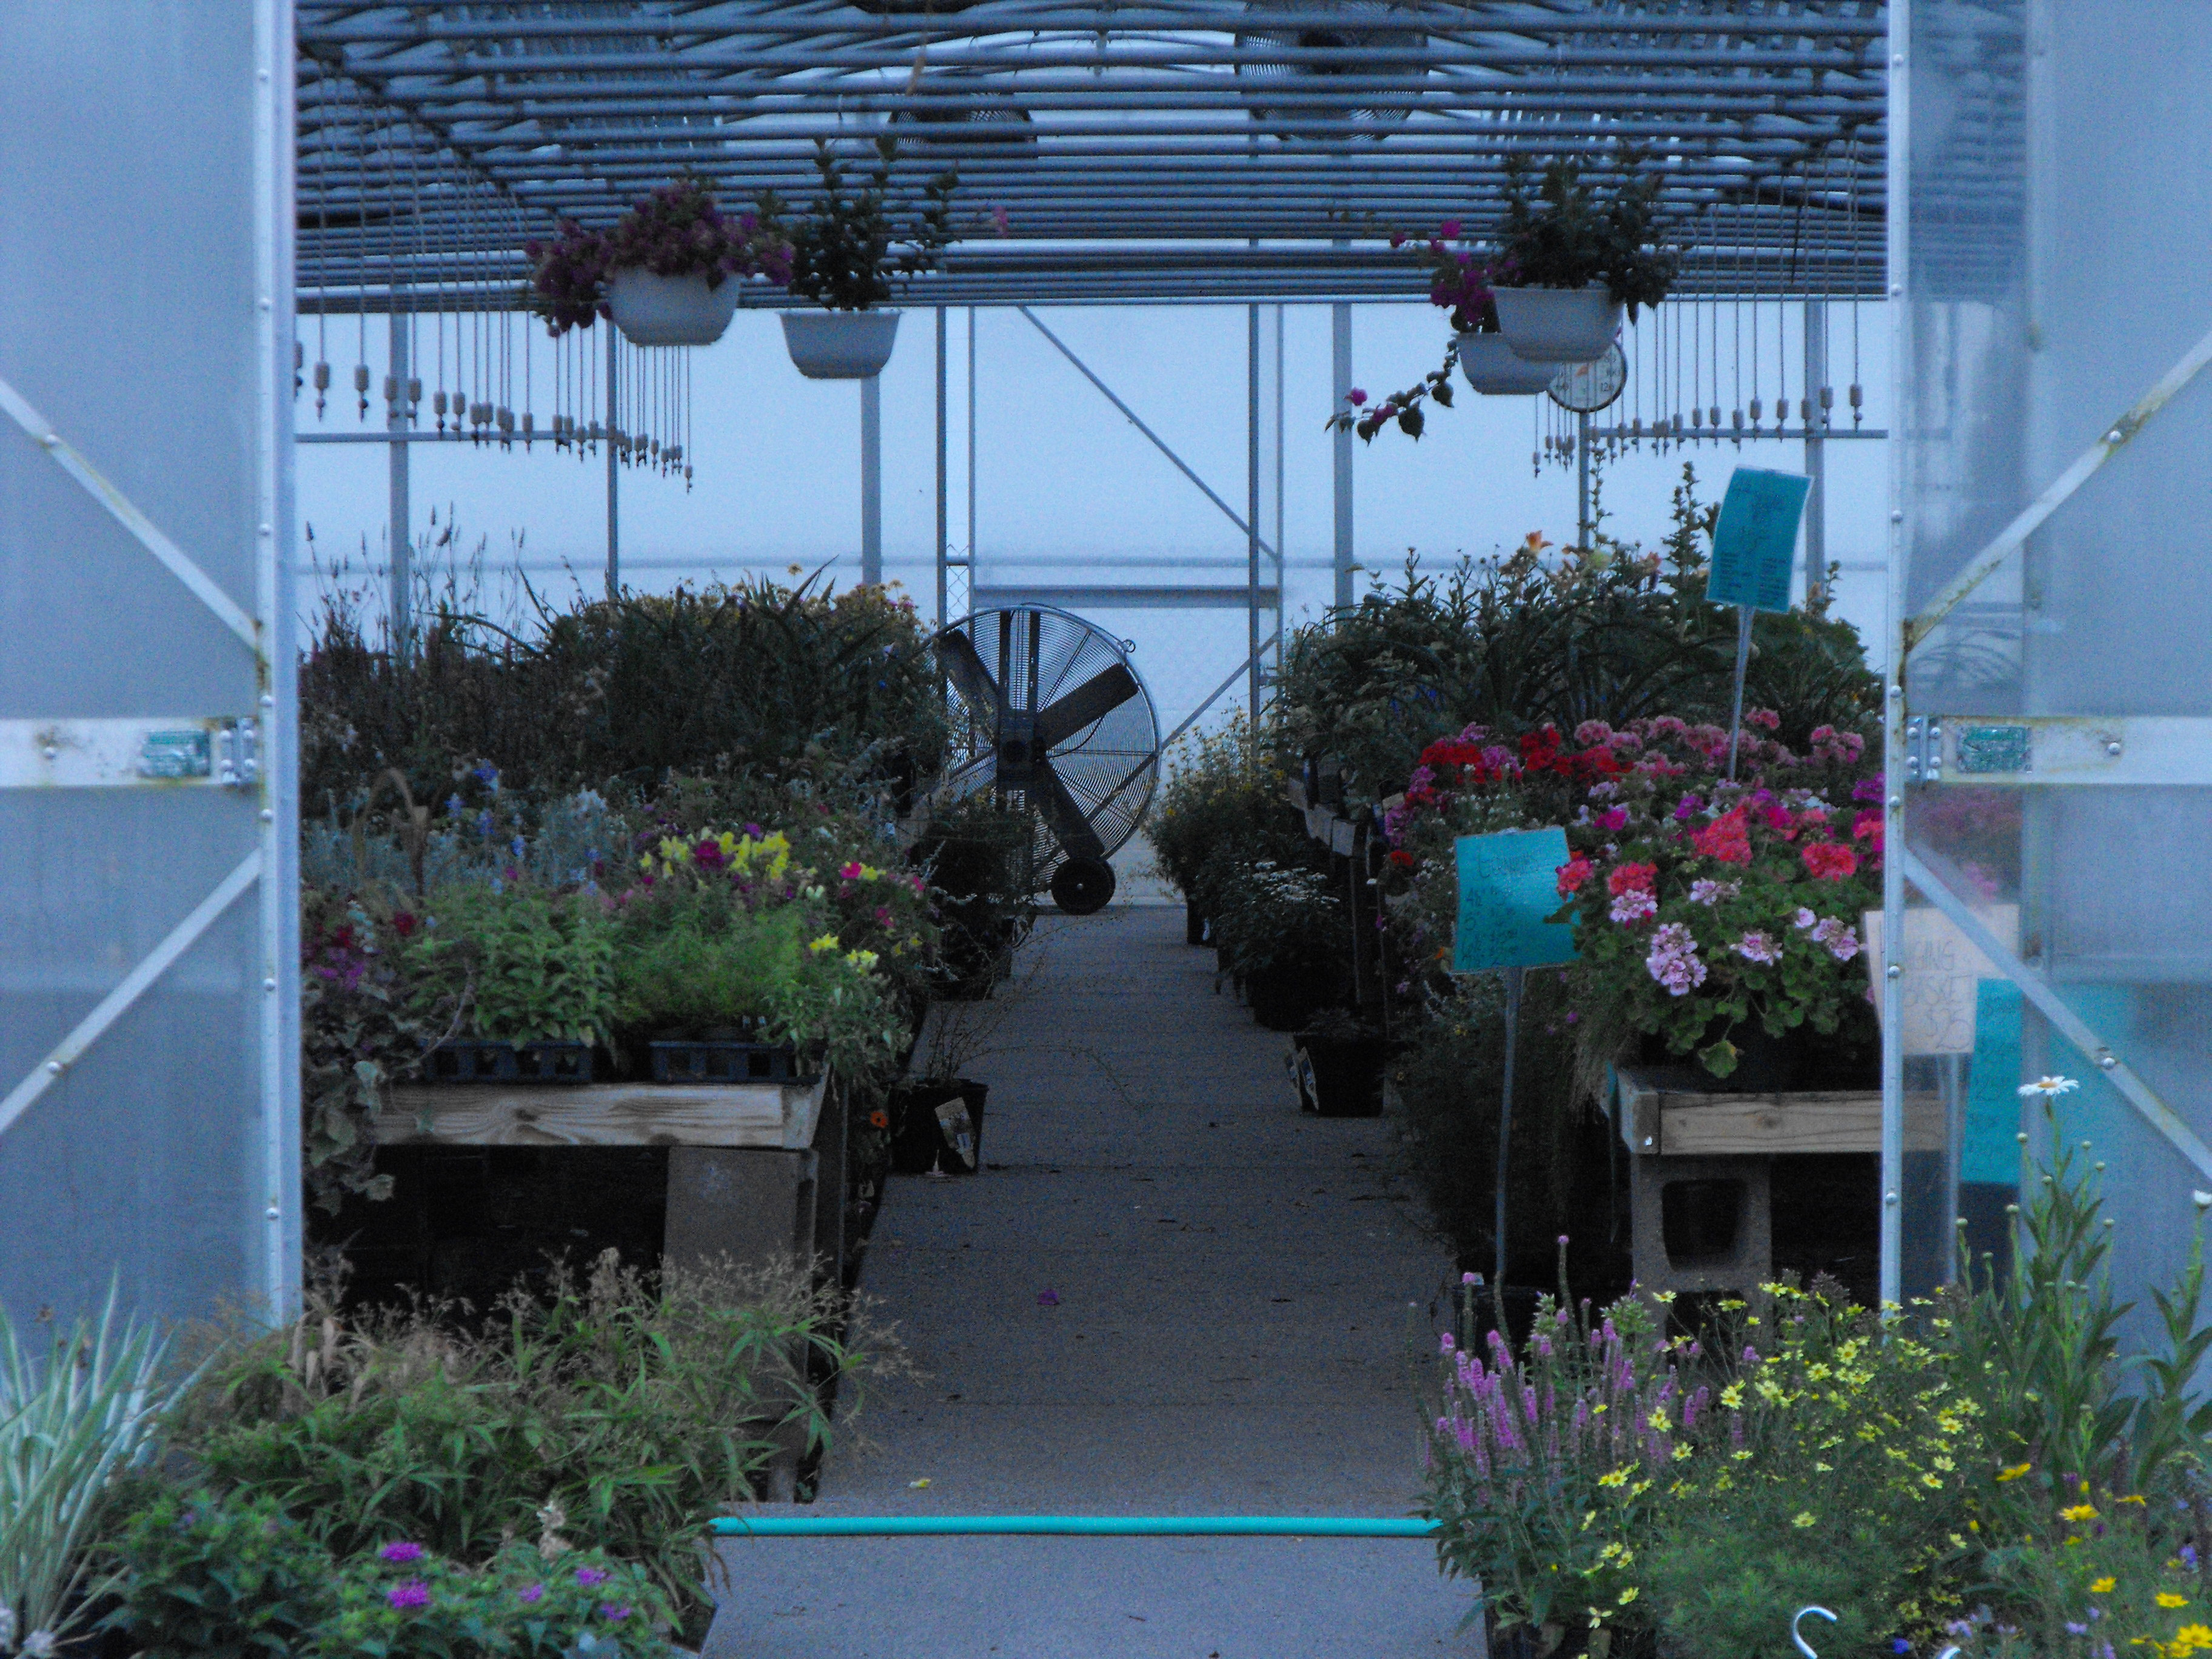 ... Might Have Concerning Your Landscape Needs, We Invite You To Perk A Lawn  Gardens To Stroll Through Our Beautiful Garden Center, Nursery And Gift Shop